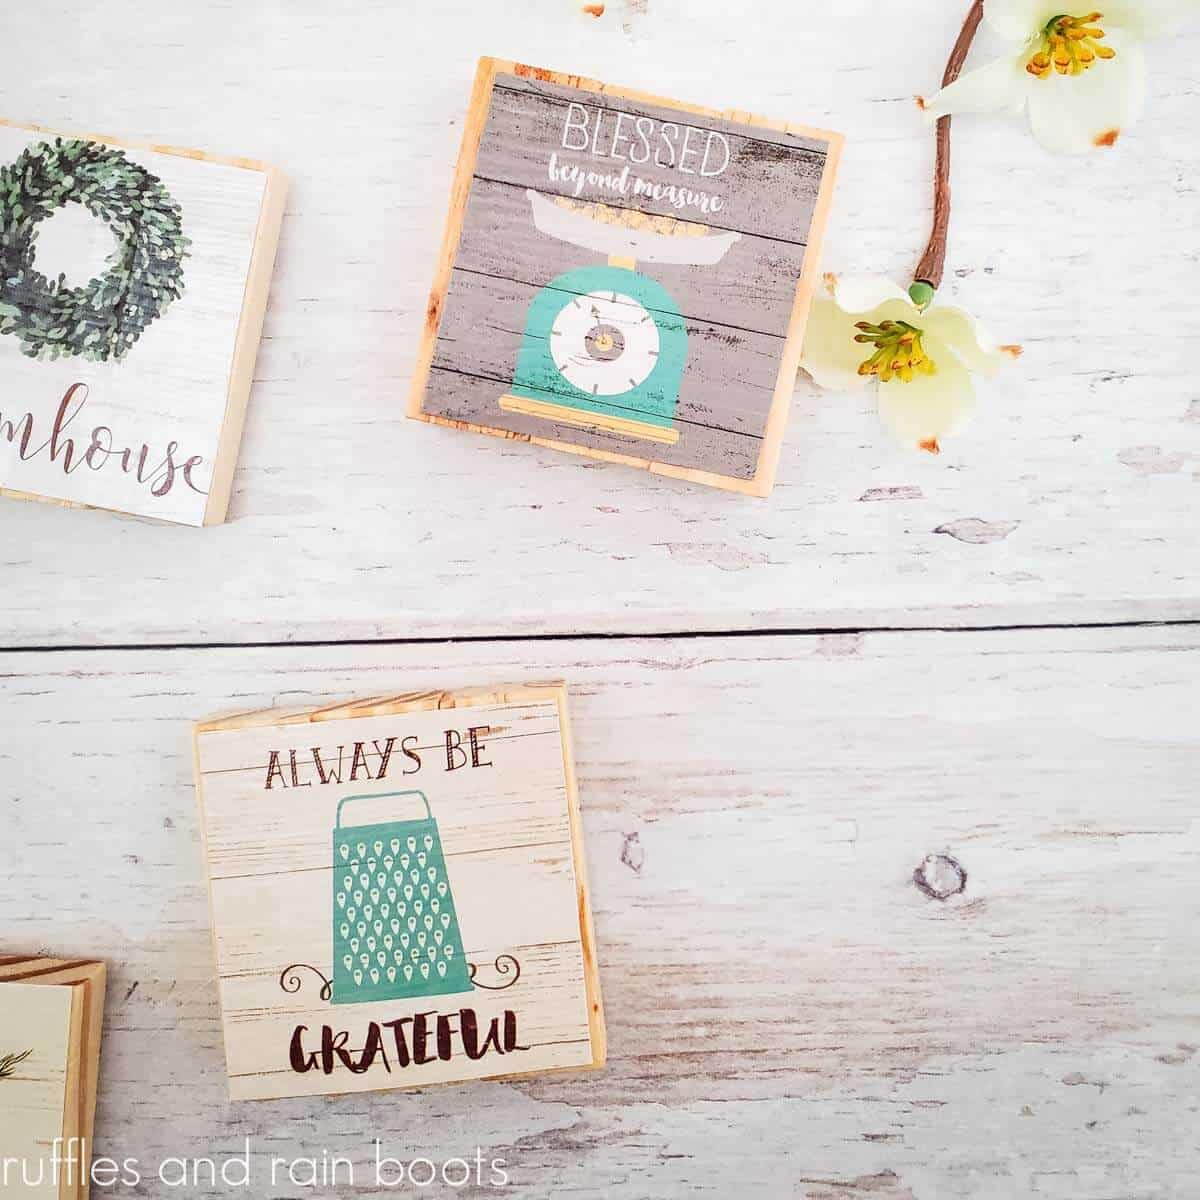 dollar tree calendar magnet made with tower blocks on white wood background with small yellow flowers